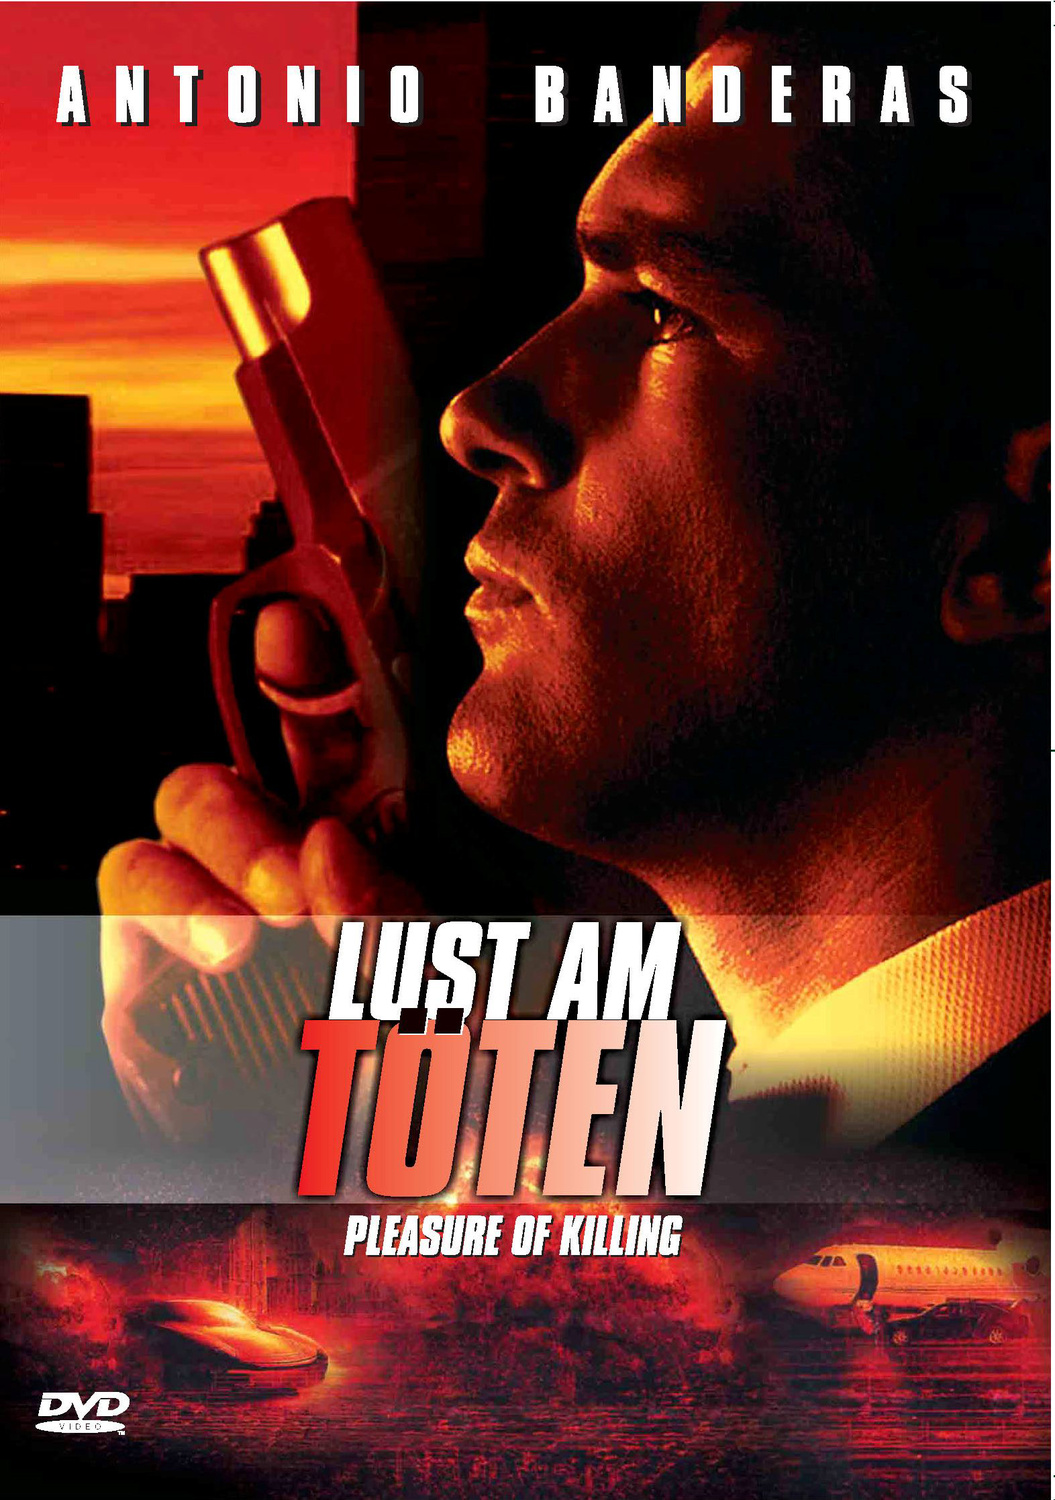 Lust am Töten - Pleasure of Killing